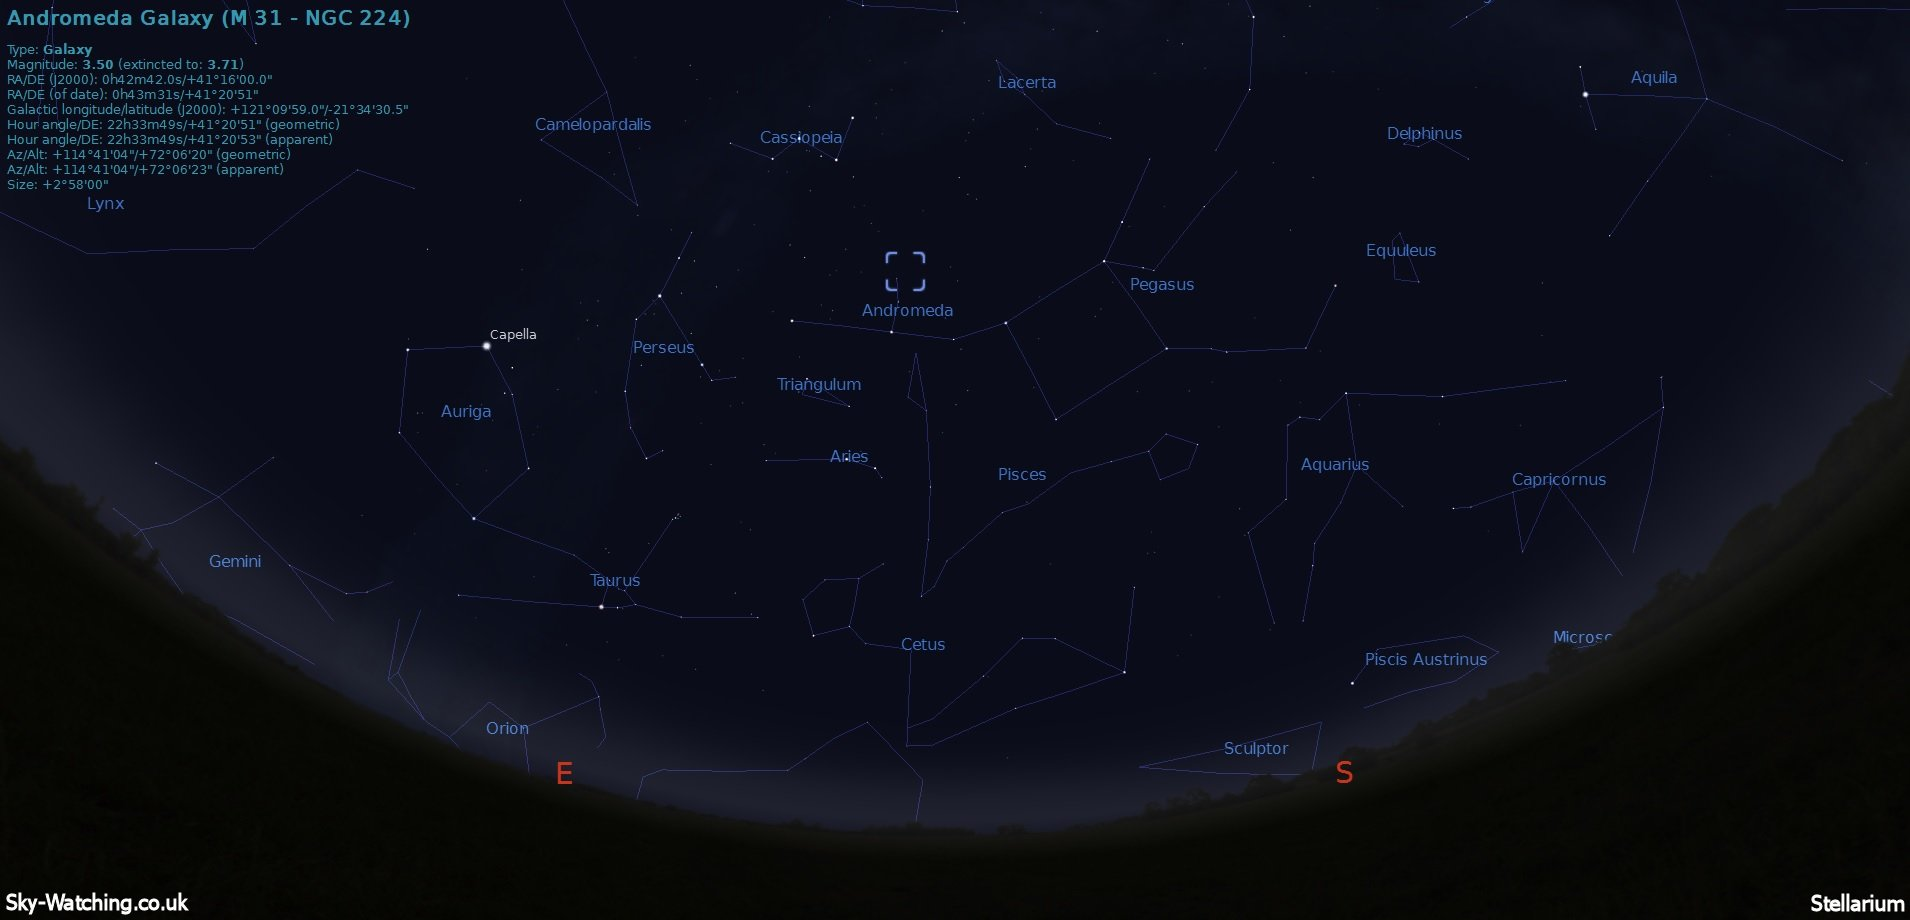 Astronomy Events – October 2014 | Sky-Watching